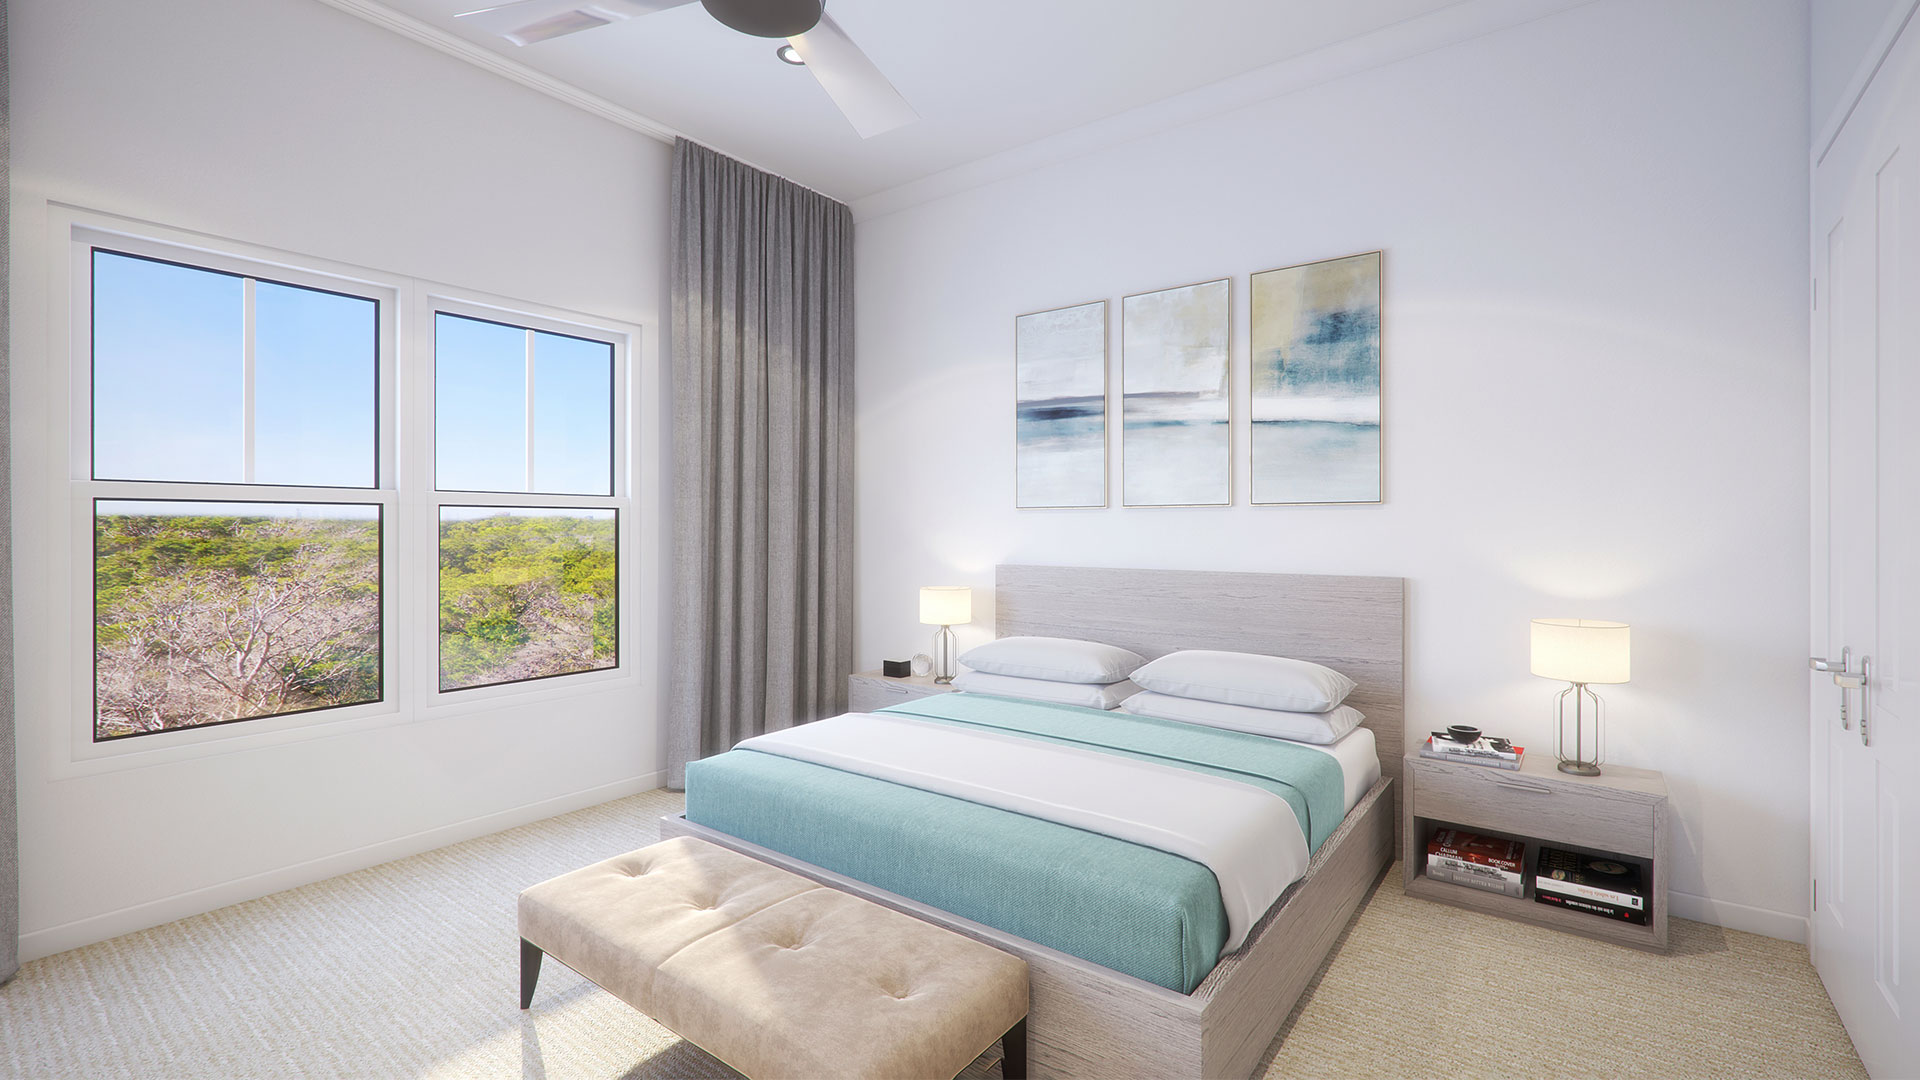 A Parkview3 master bedroom